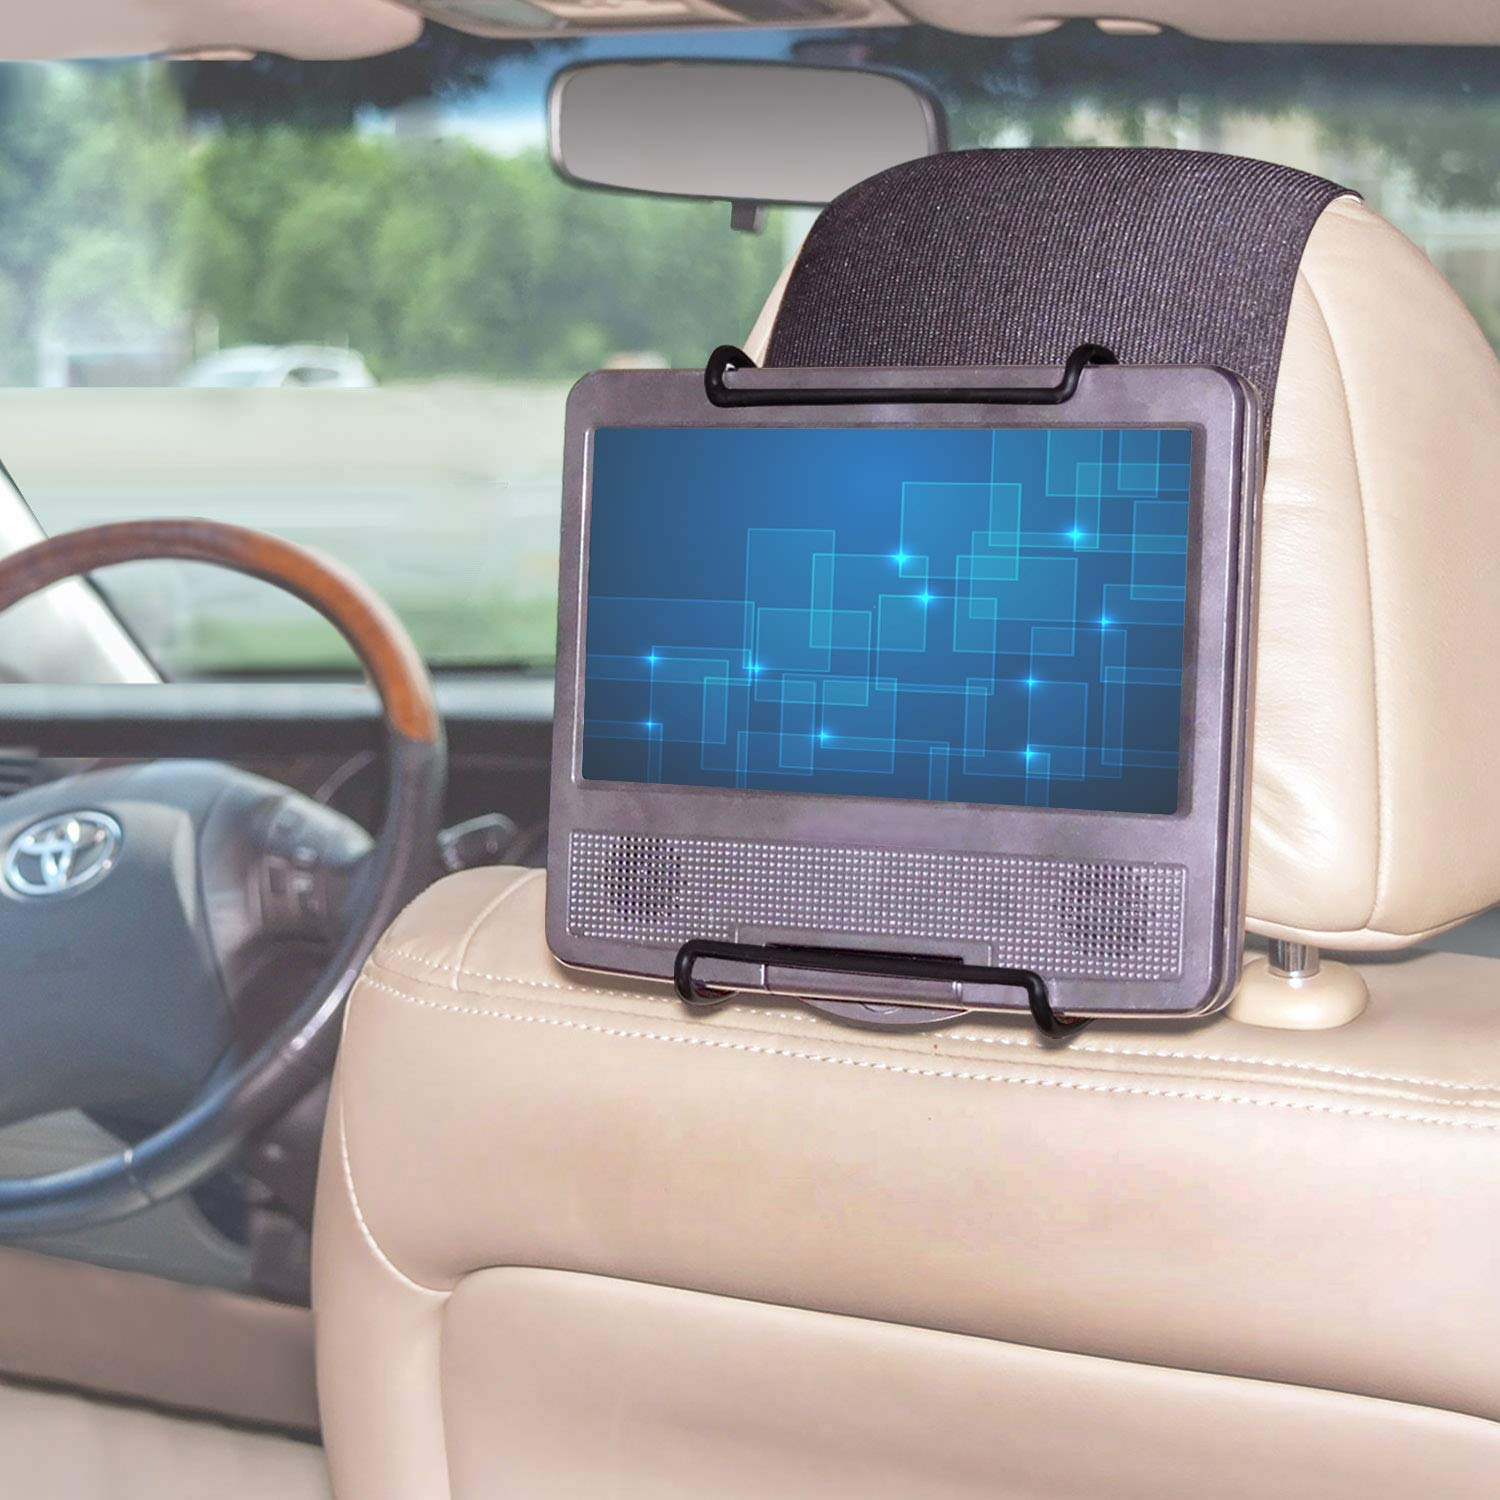 TFY Universal Car Headrest Mount Holder for Portable DVD Player by TFY